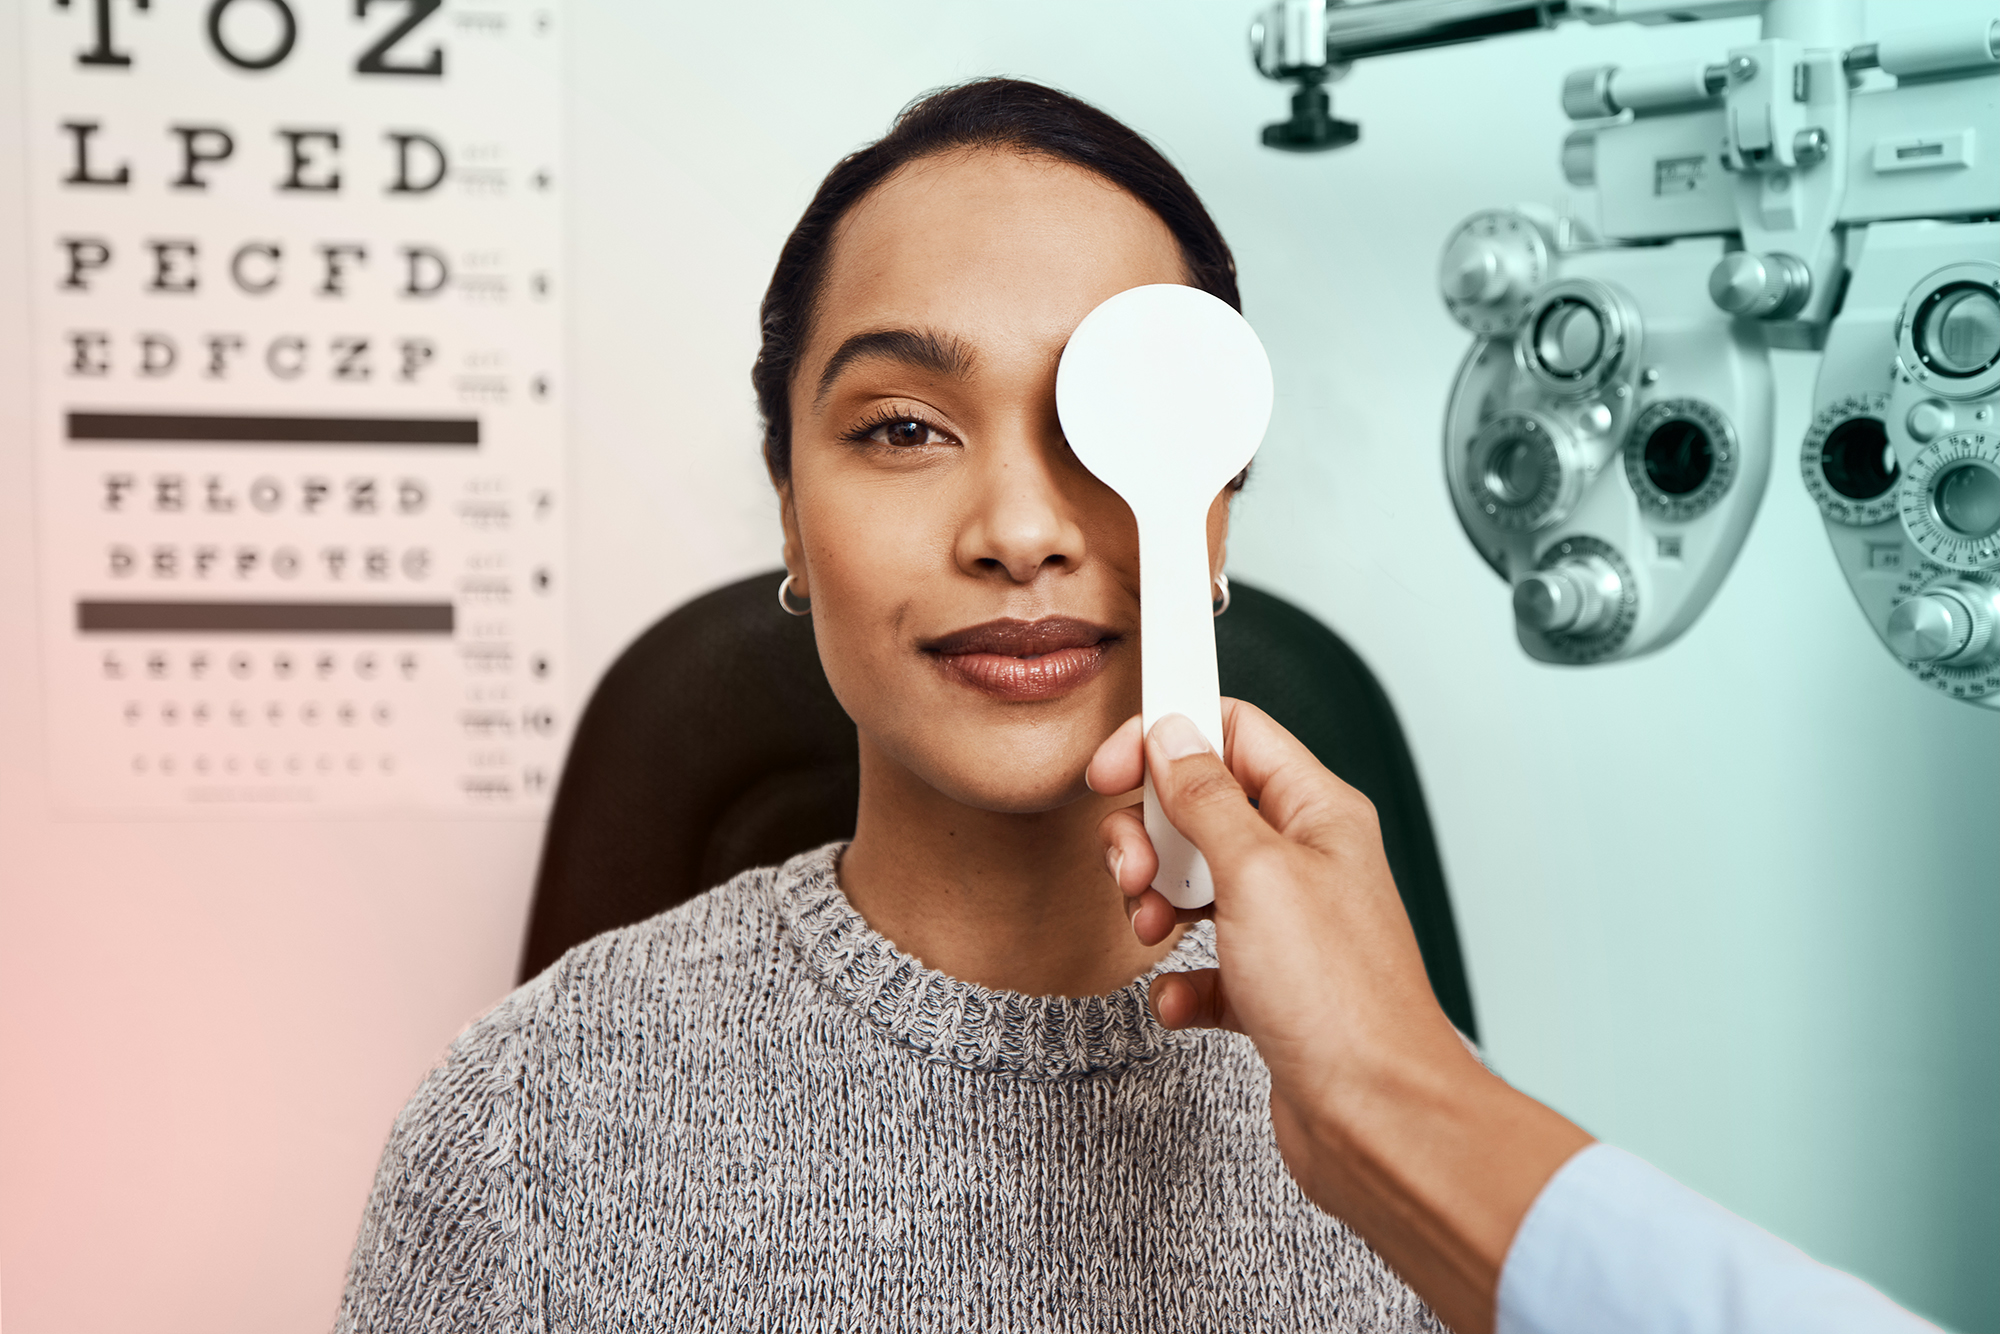 Portrait of a woman at an eye doctor appointment